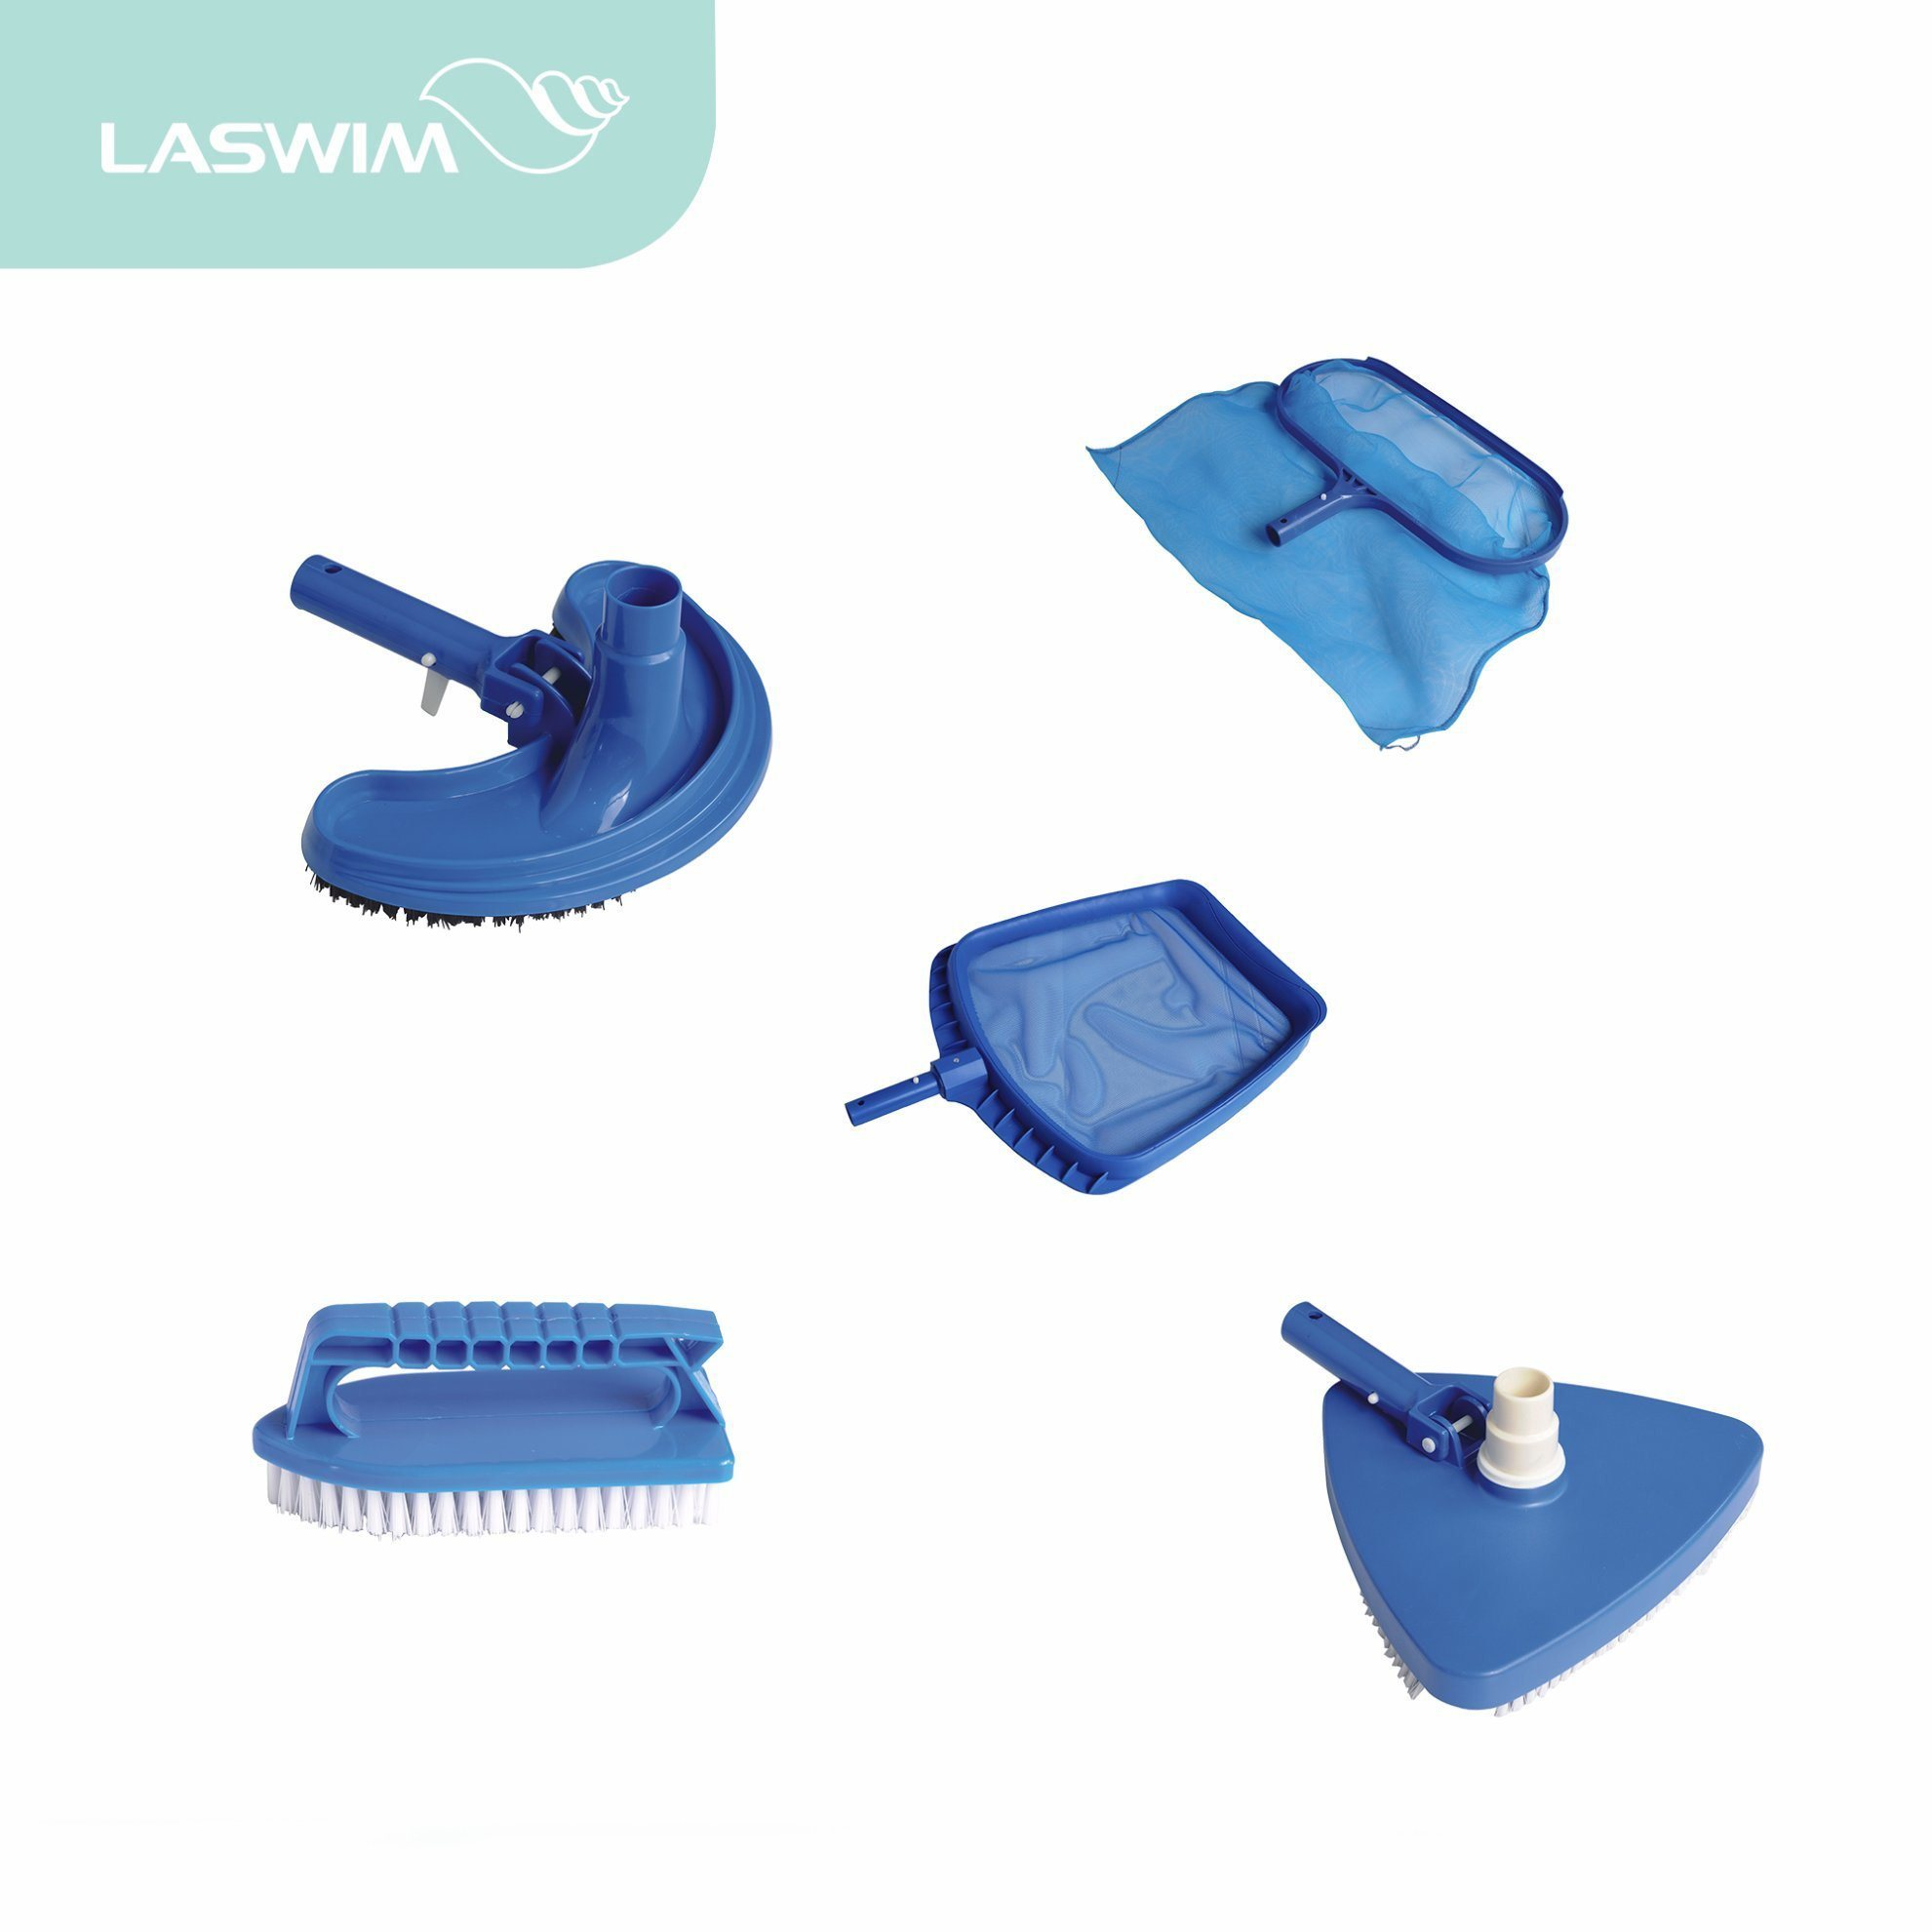 China Hot Selling Swimming Pool Accessories Plastic Products - China ...